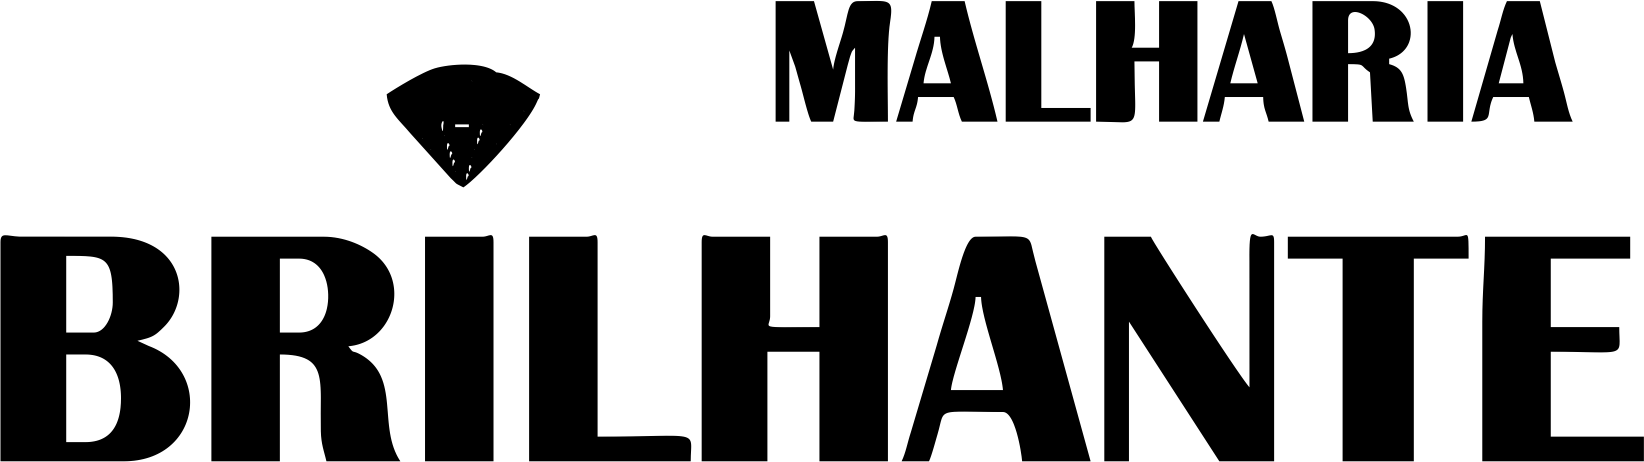 MALHARIA : Brand Short Description Type Here.